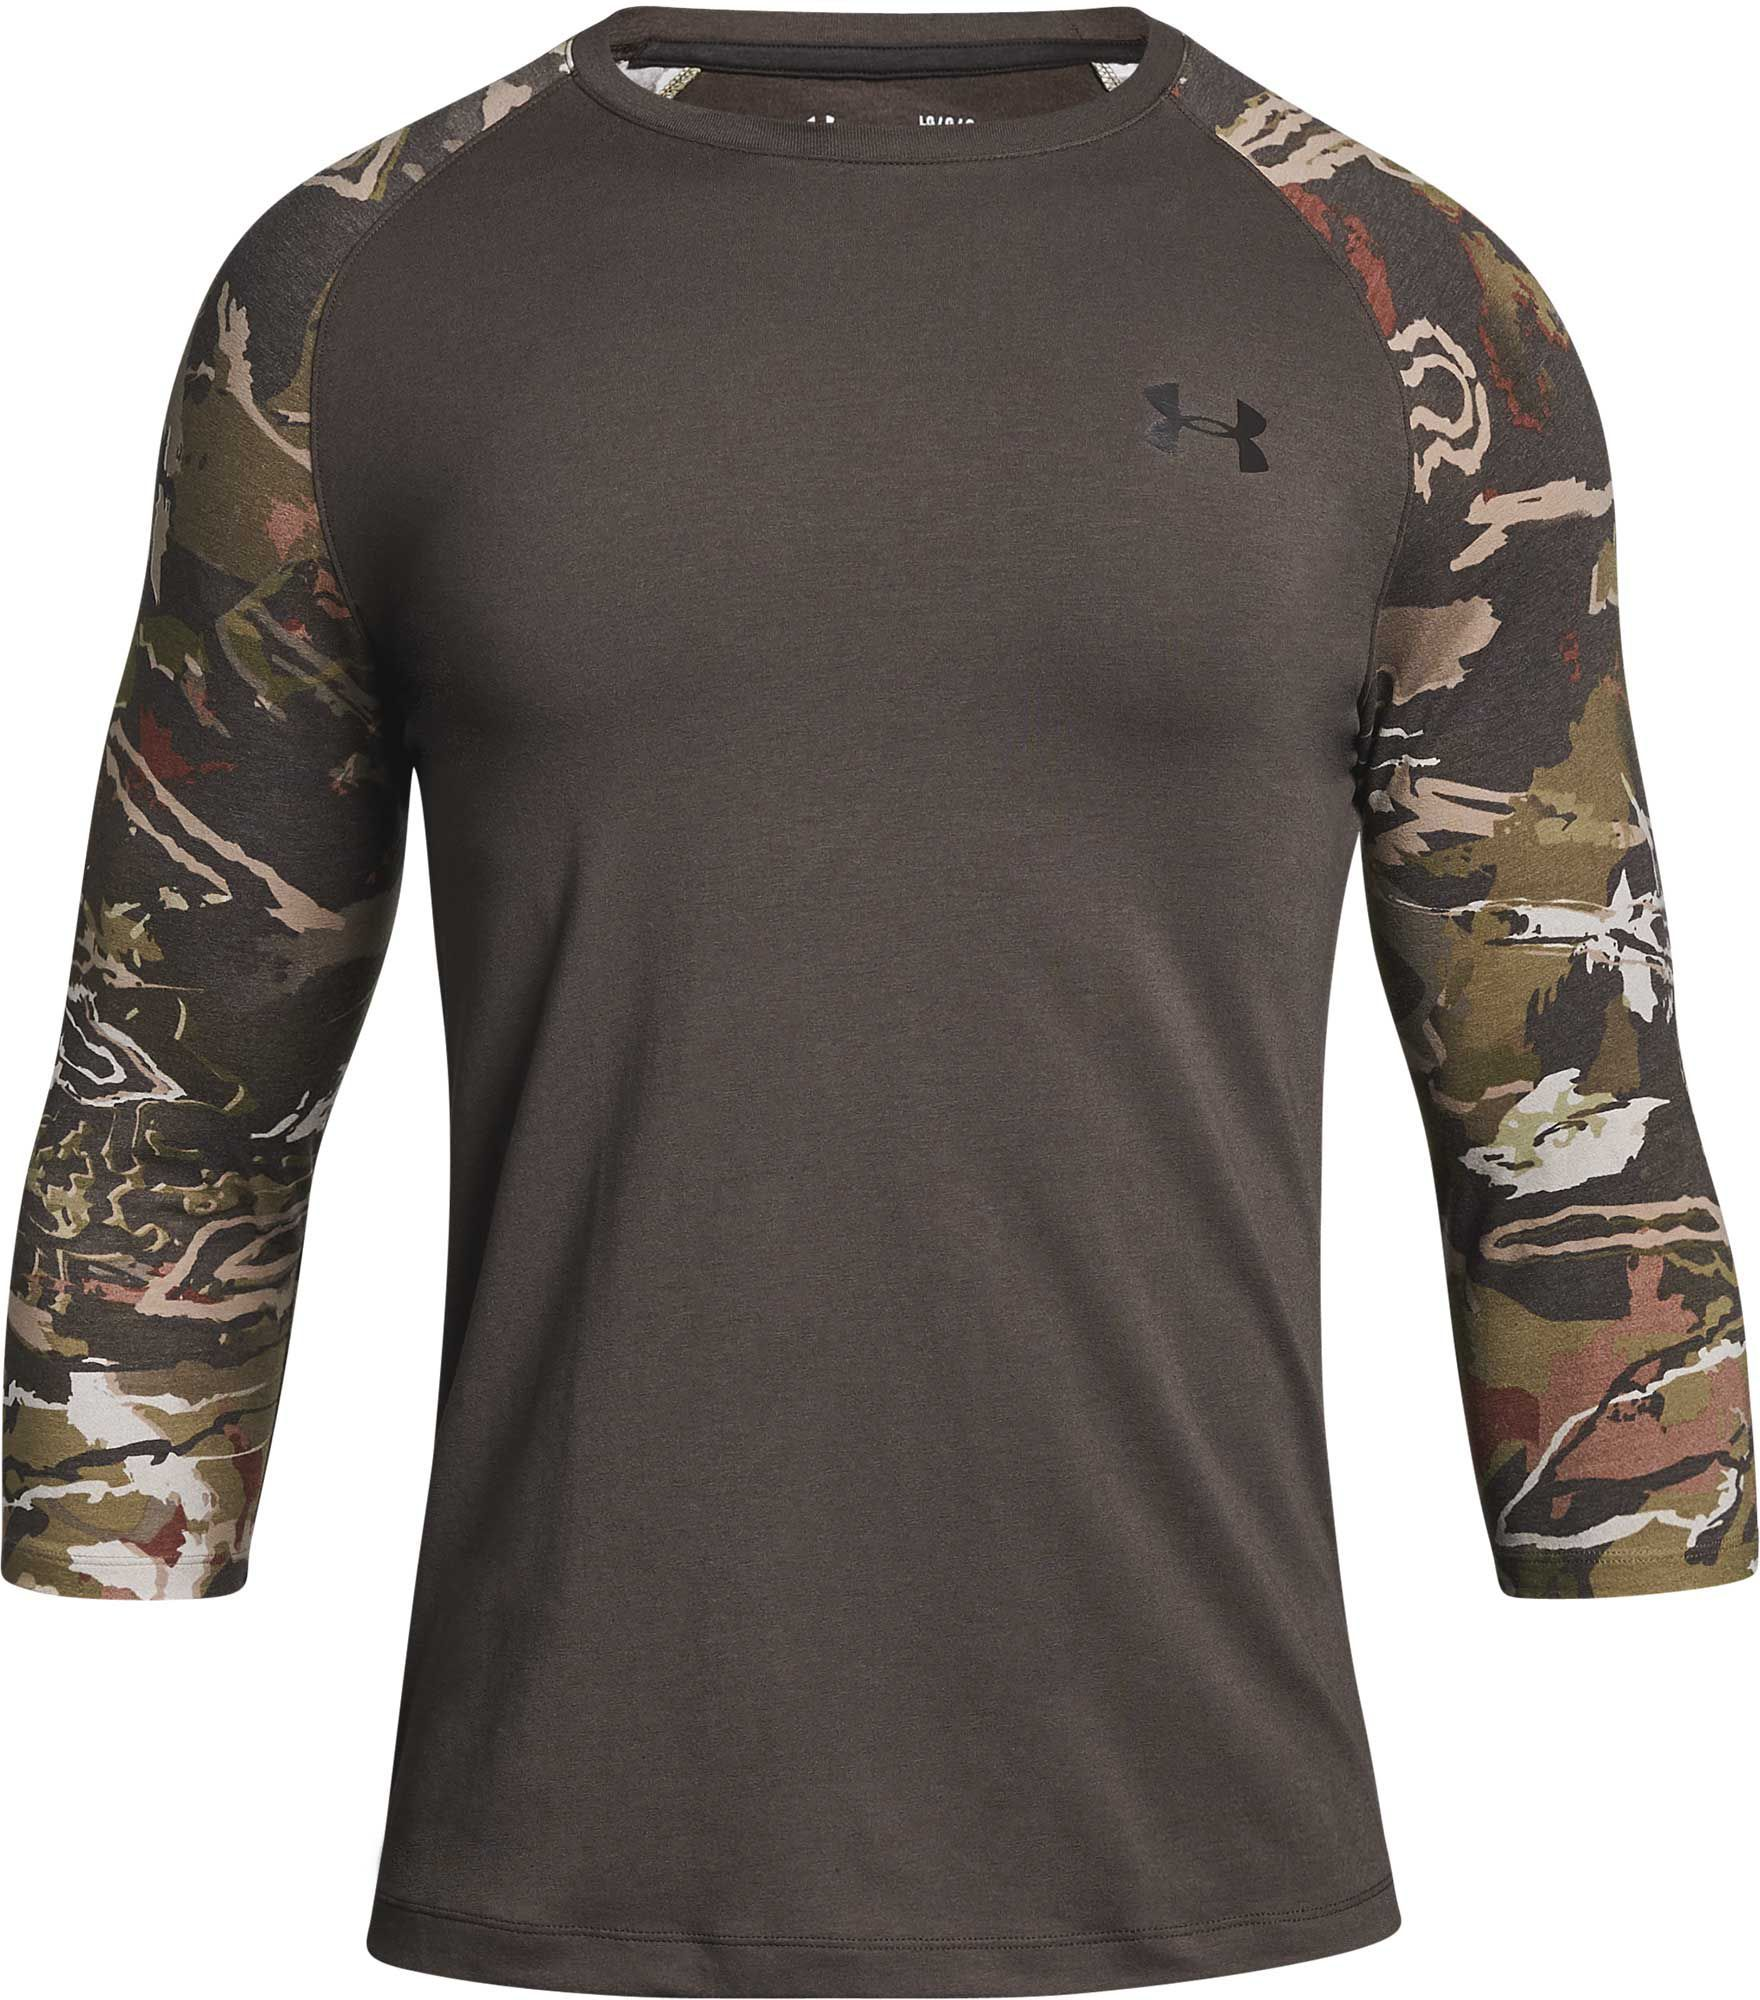 43cdf50a1ca Under Armour Men s Ridge Reaper Hunting Long Sleeve Shirt in 2019 ...